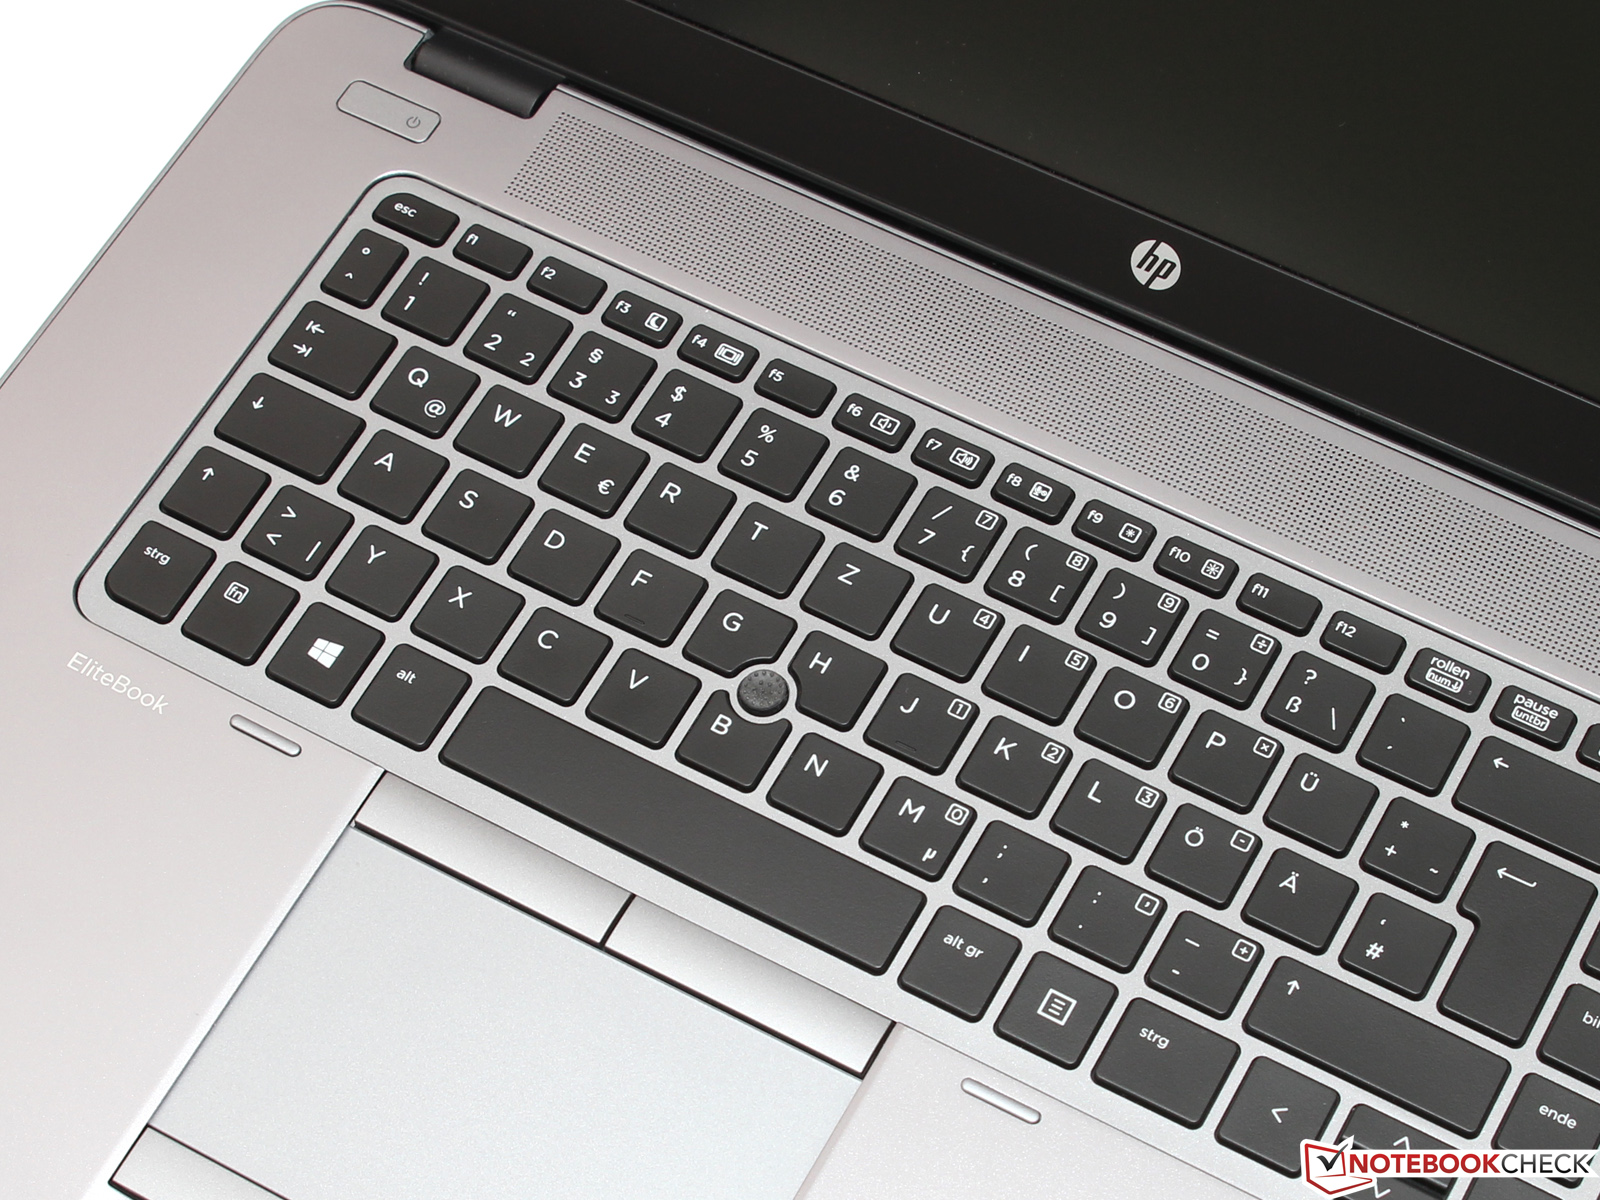 HP EliteBook 750 G1 Broadcom WLAN Treiber Windows 10